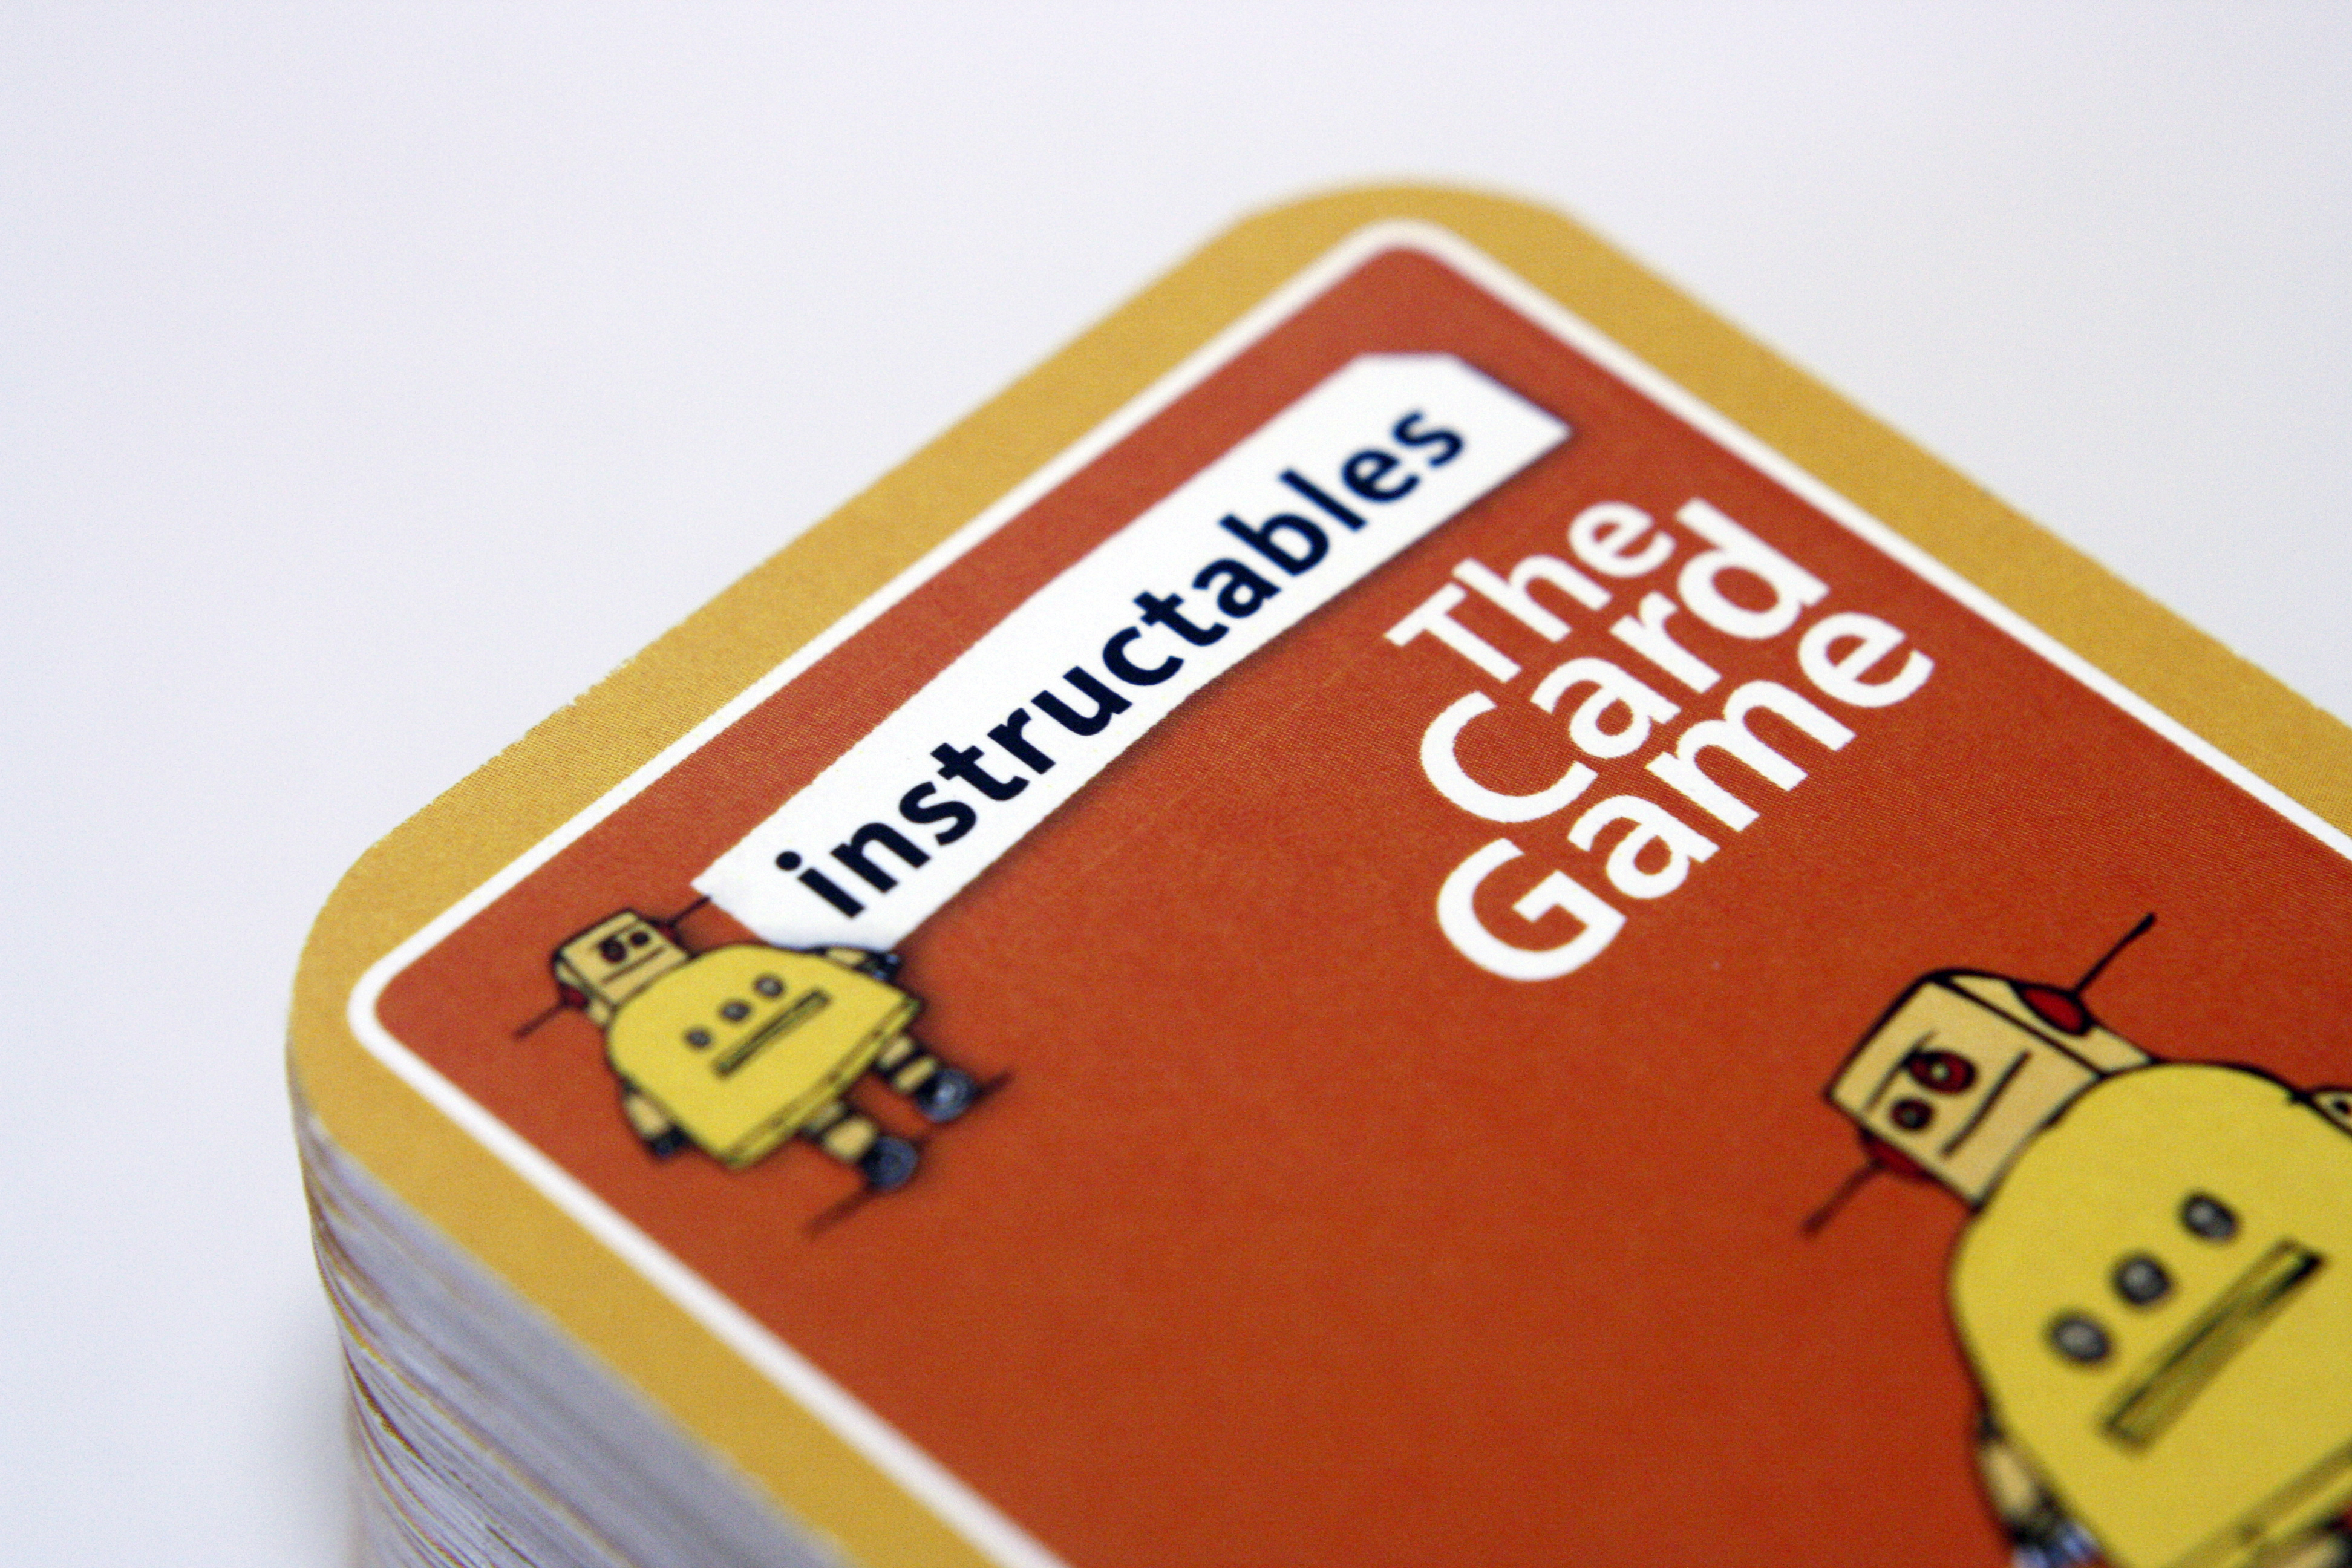 Top Trumps inspired Instructables Card Game